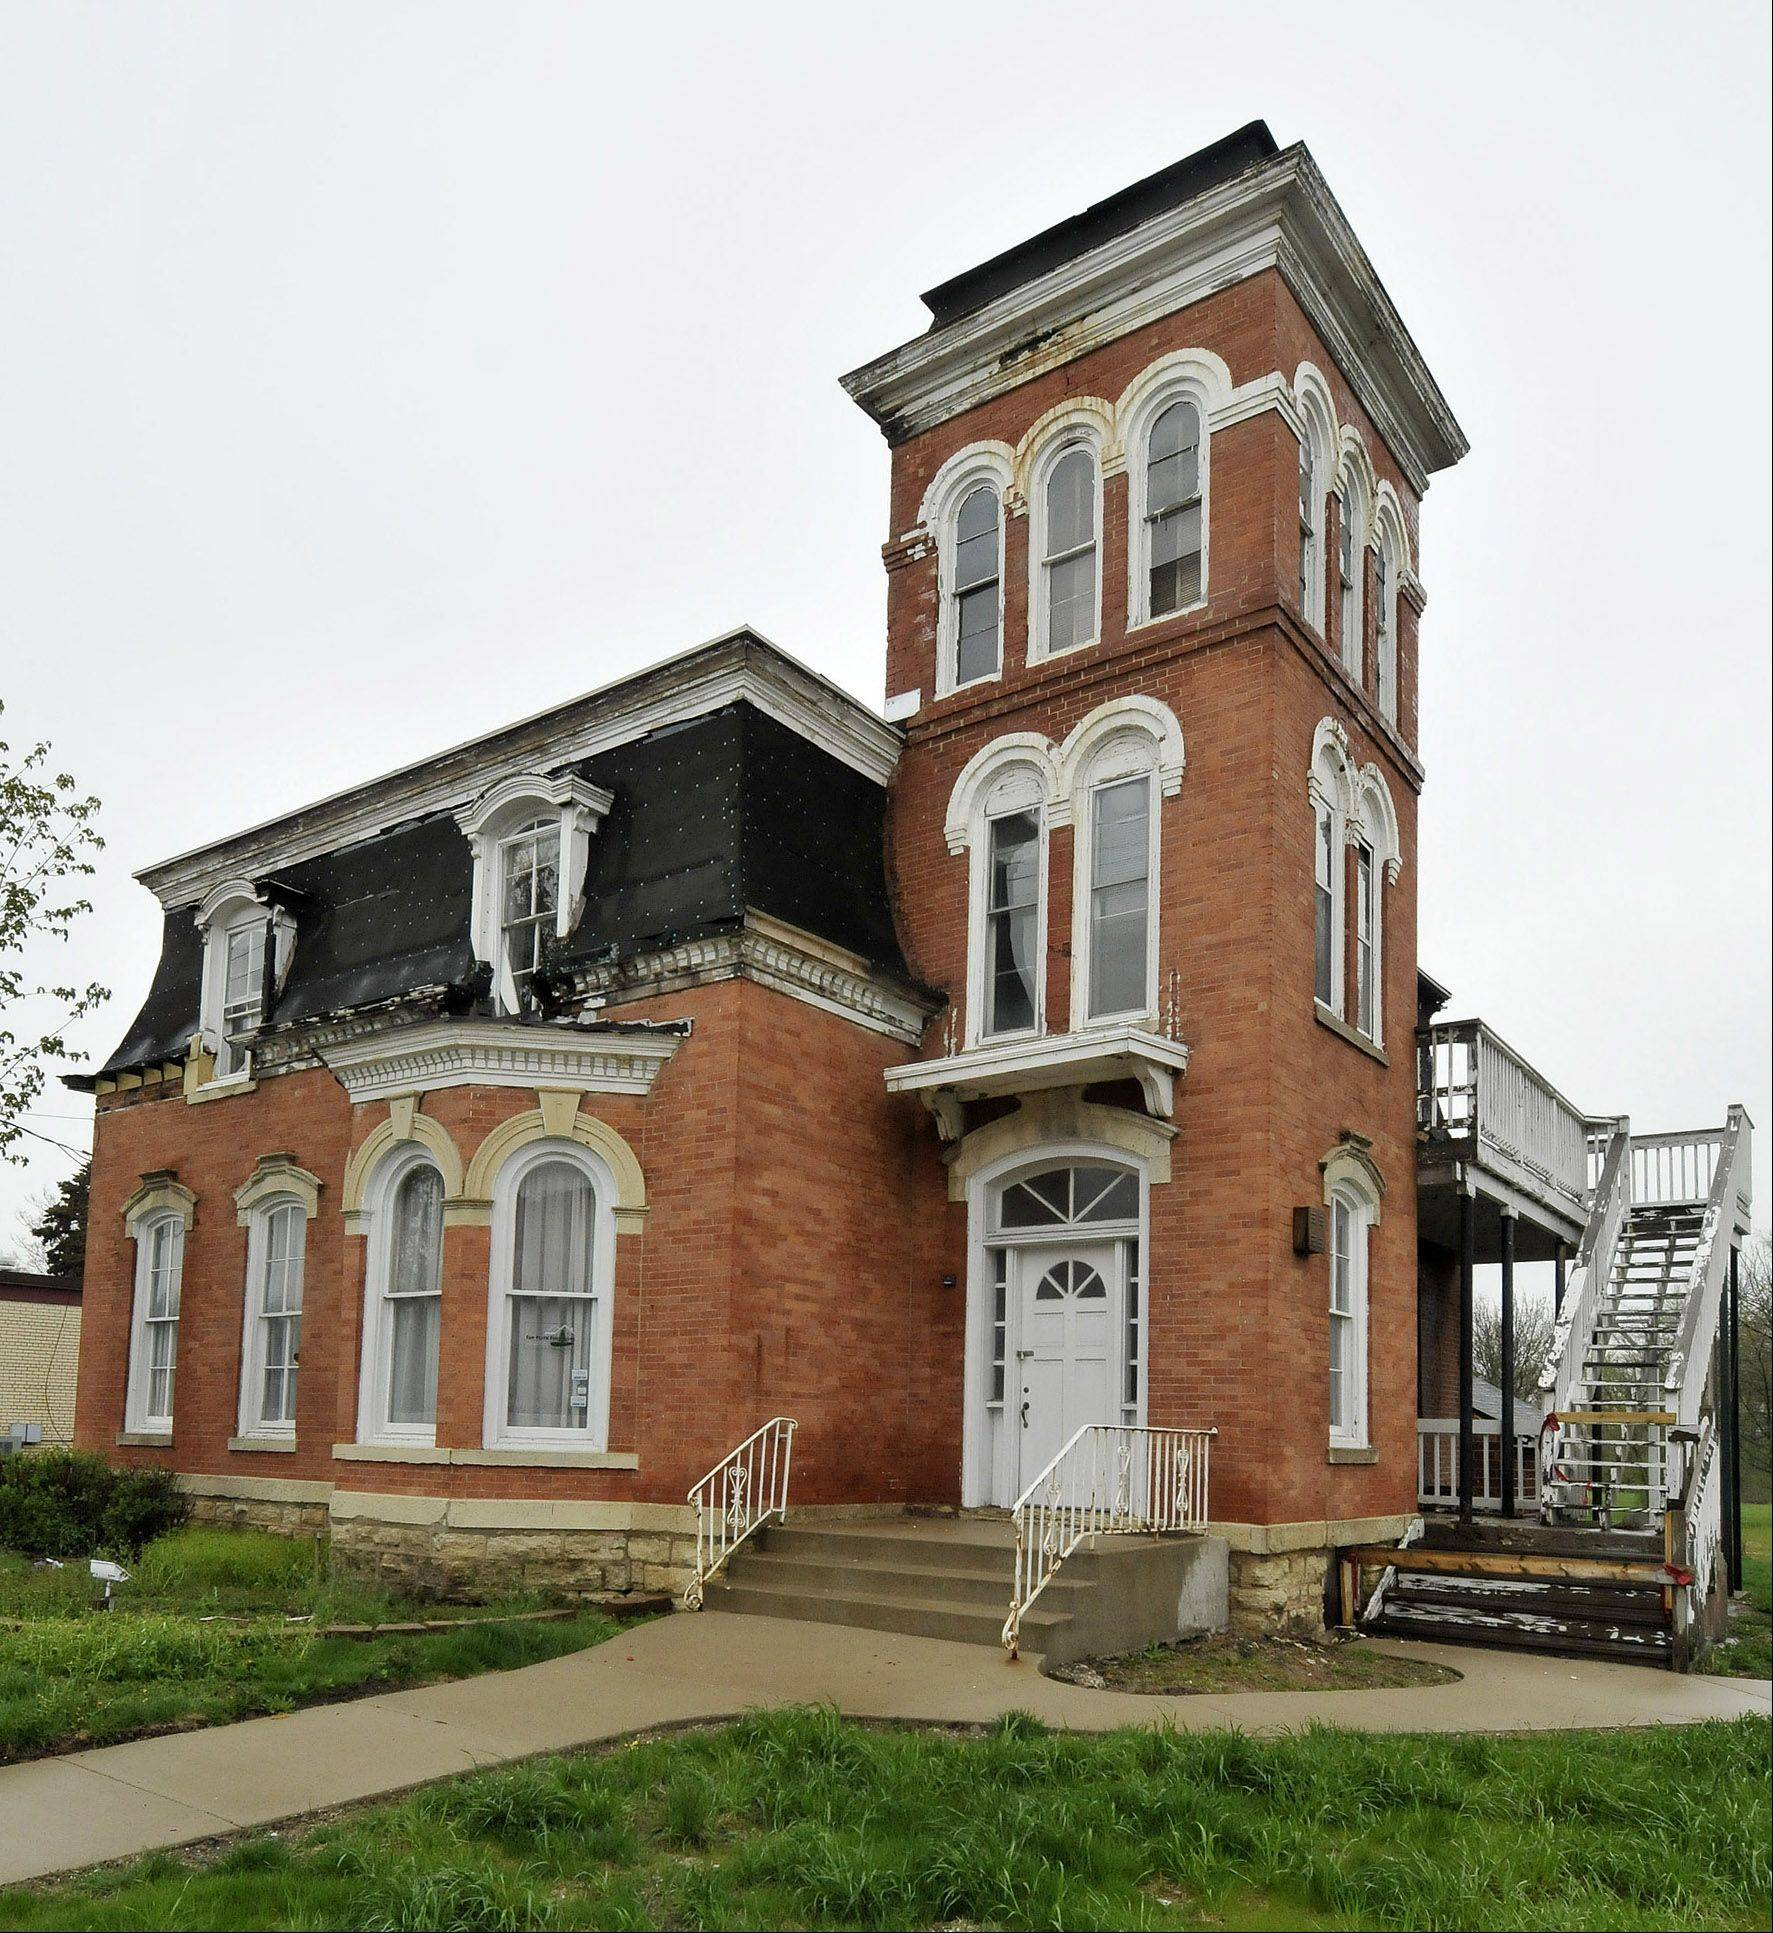 West Chicago officials are seeking permission from the city's historic preservation commission to demolish the 144-year-old Joel Wiant House. It appears unlikely that will happen. But the city council gets the final say on whether the house at 151 W. Washington St. will be razed.